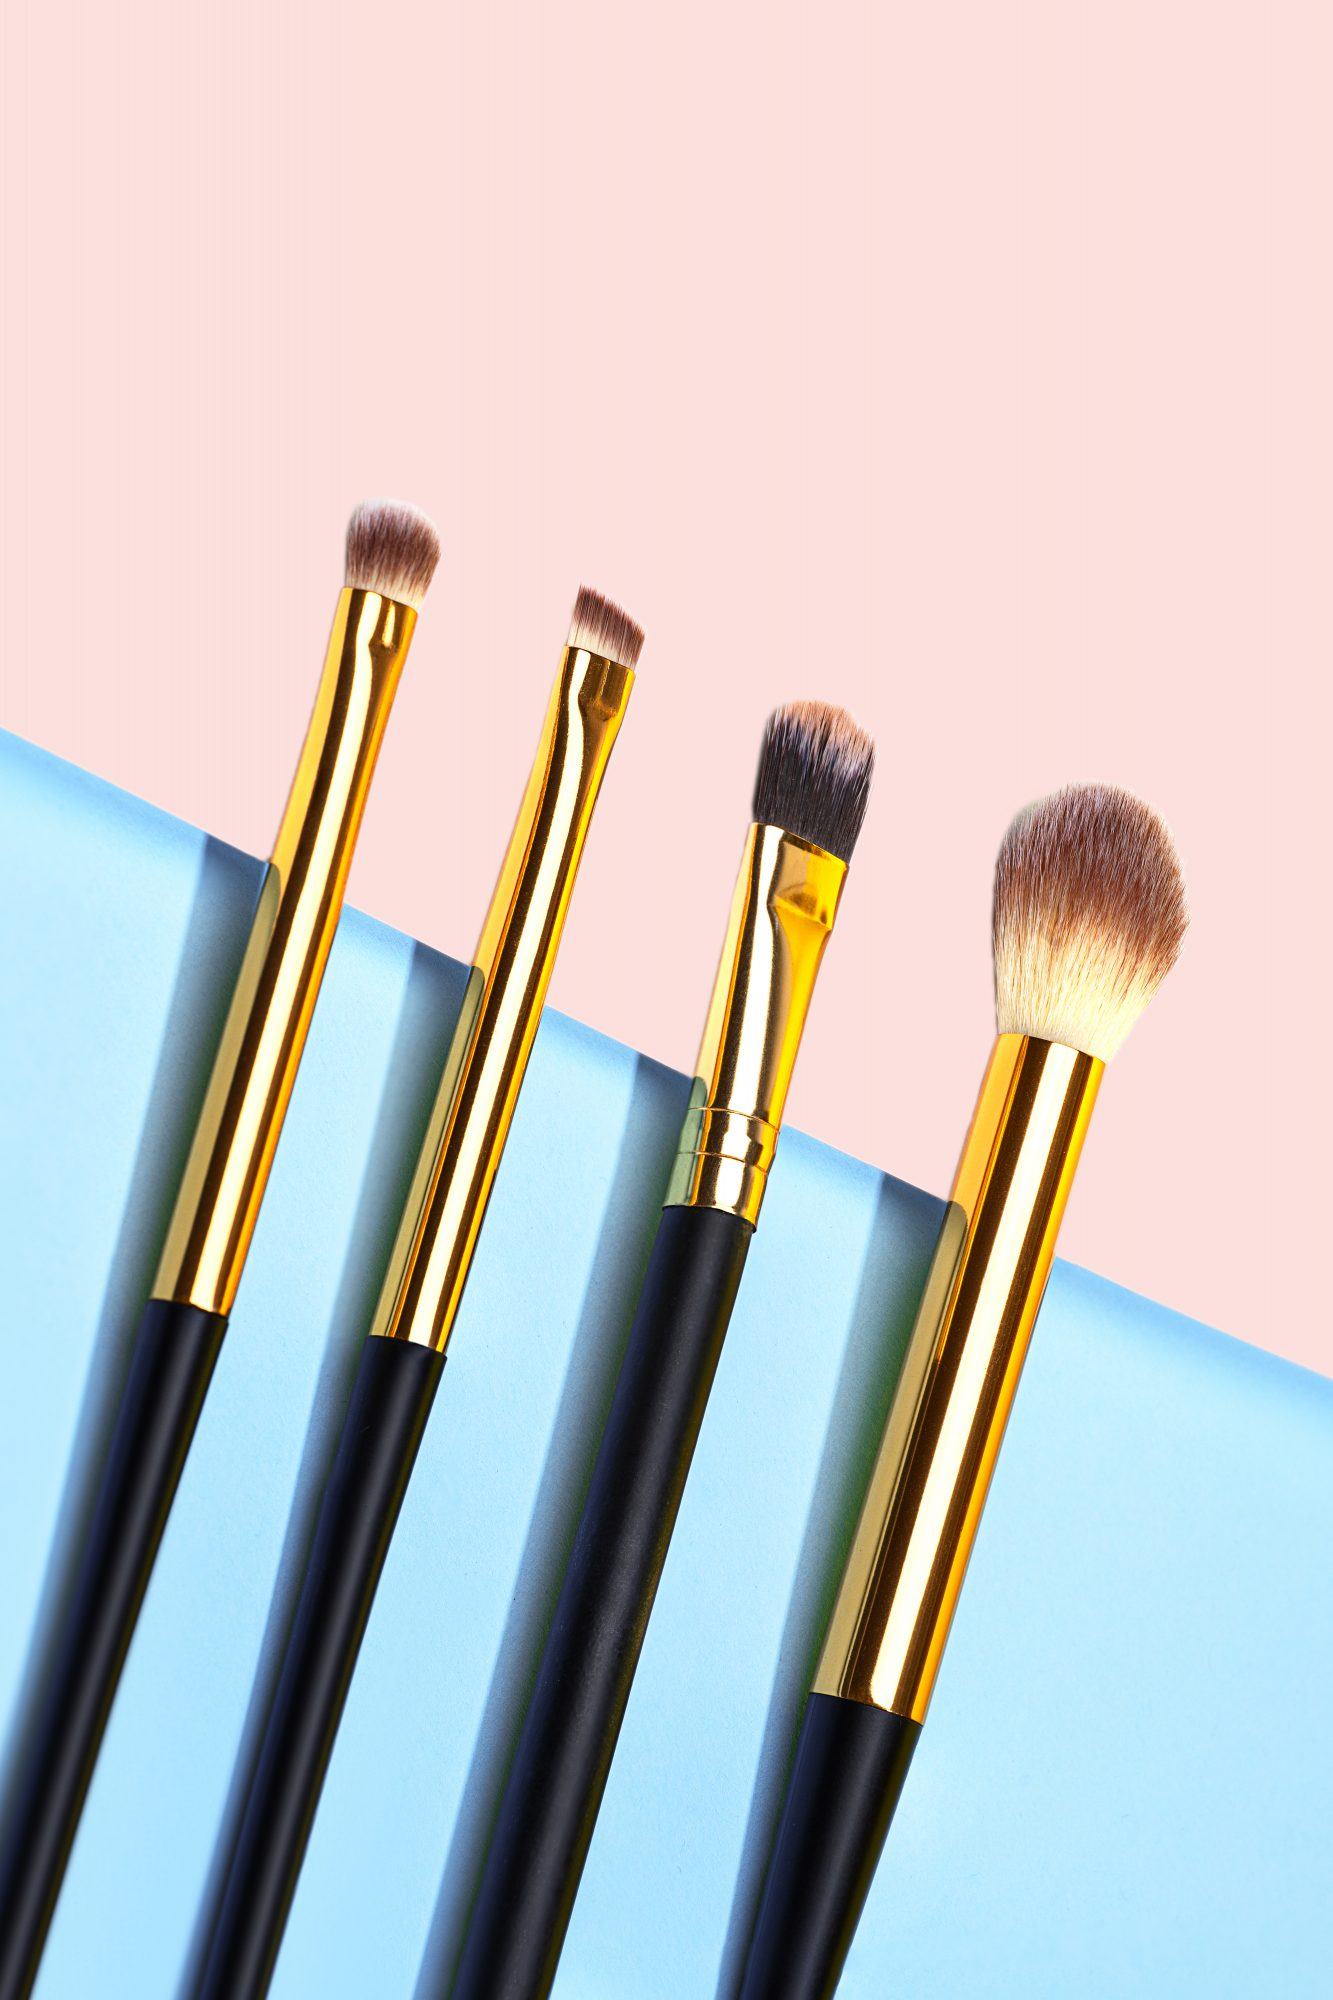 assortment of makeup brushes on blue and pink background